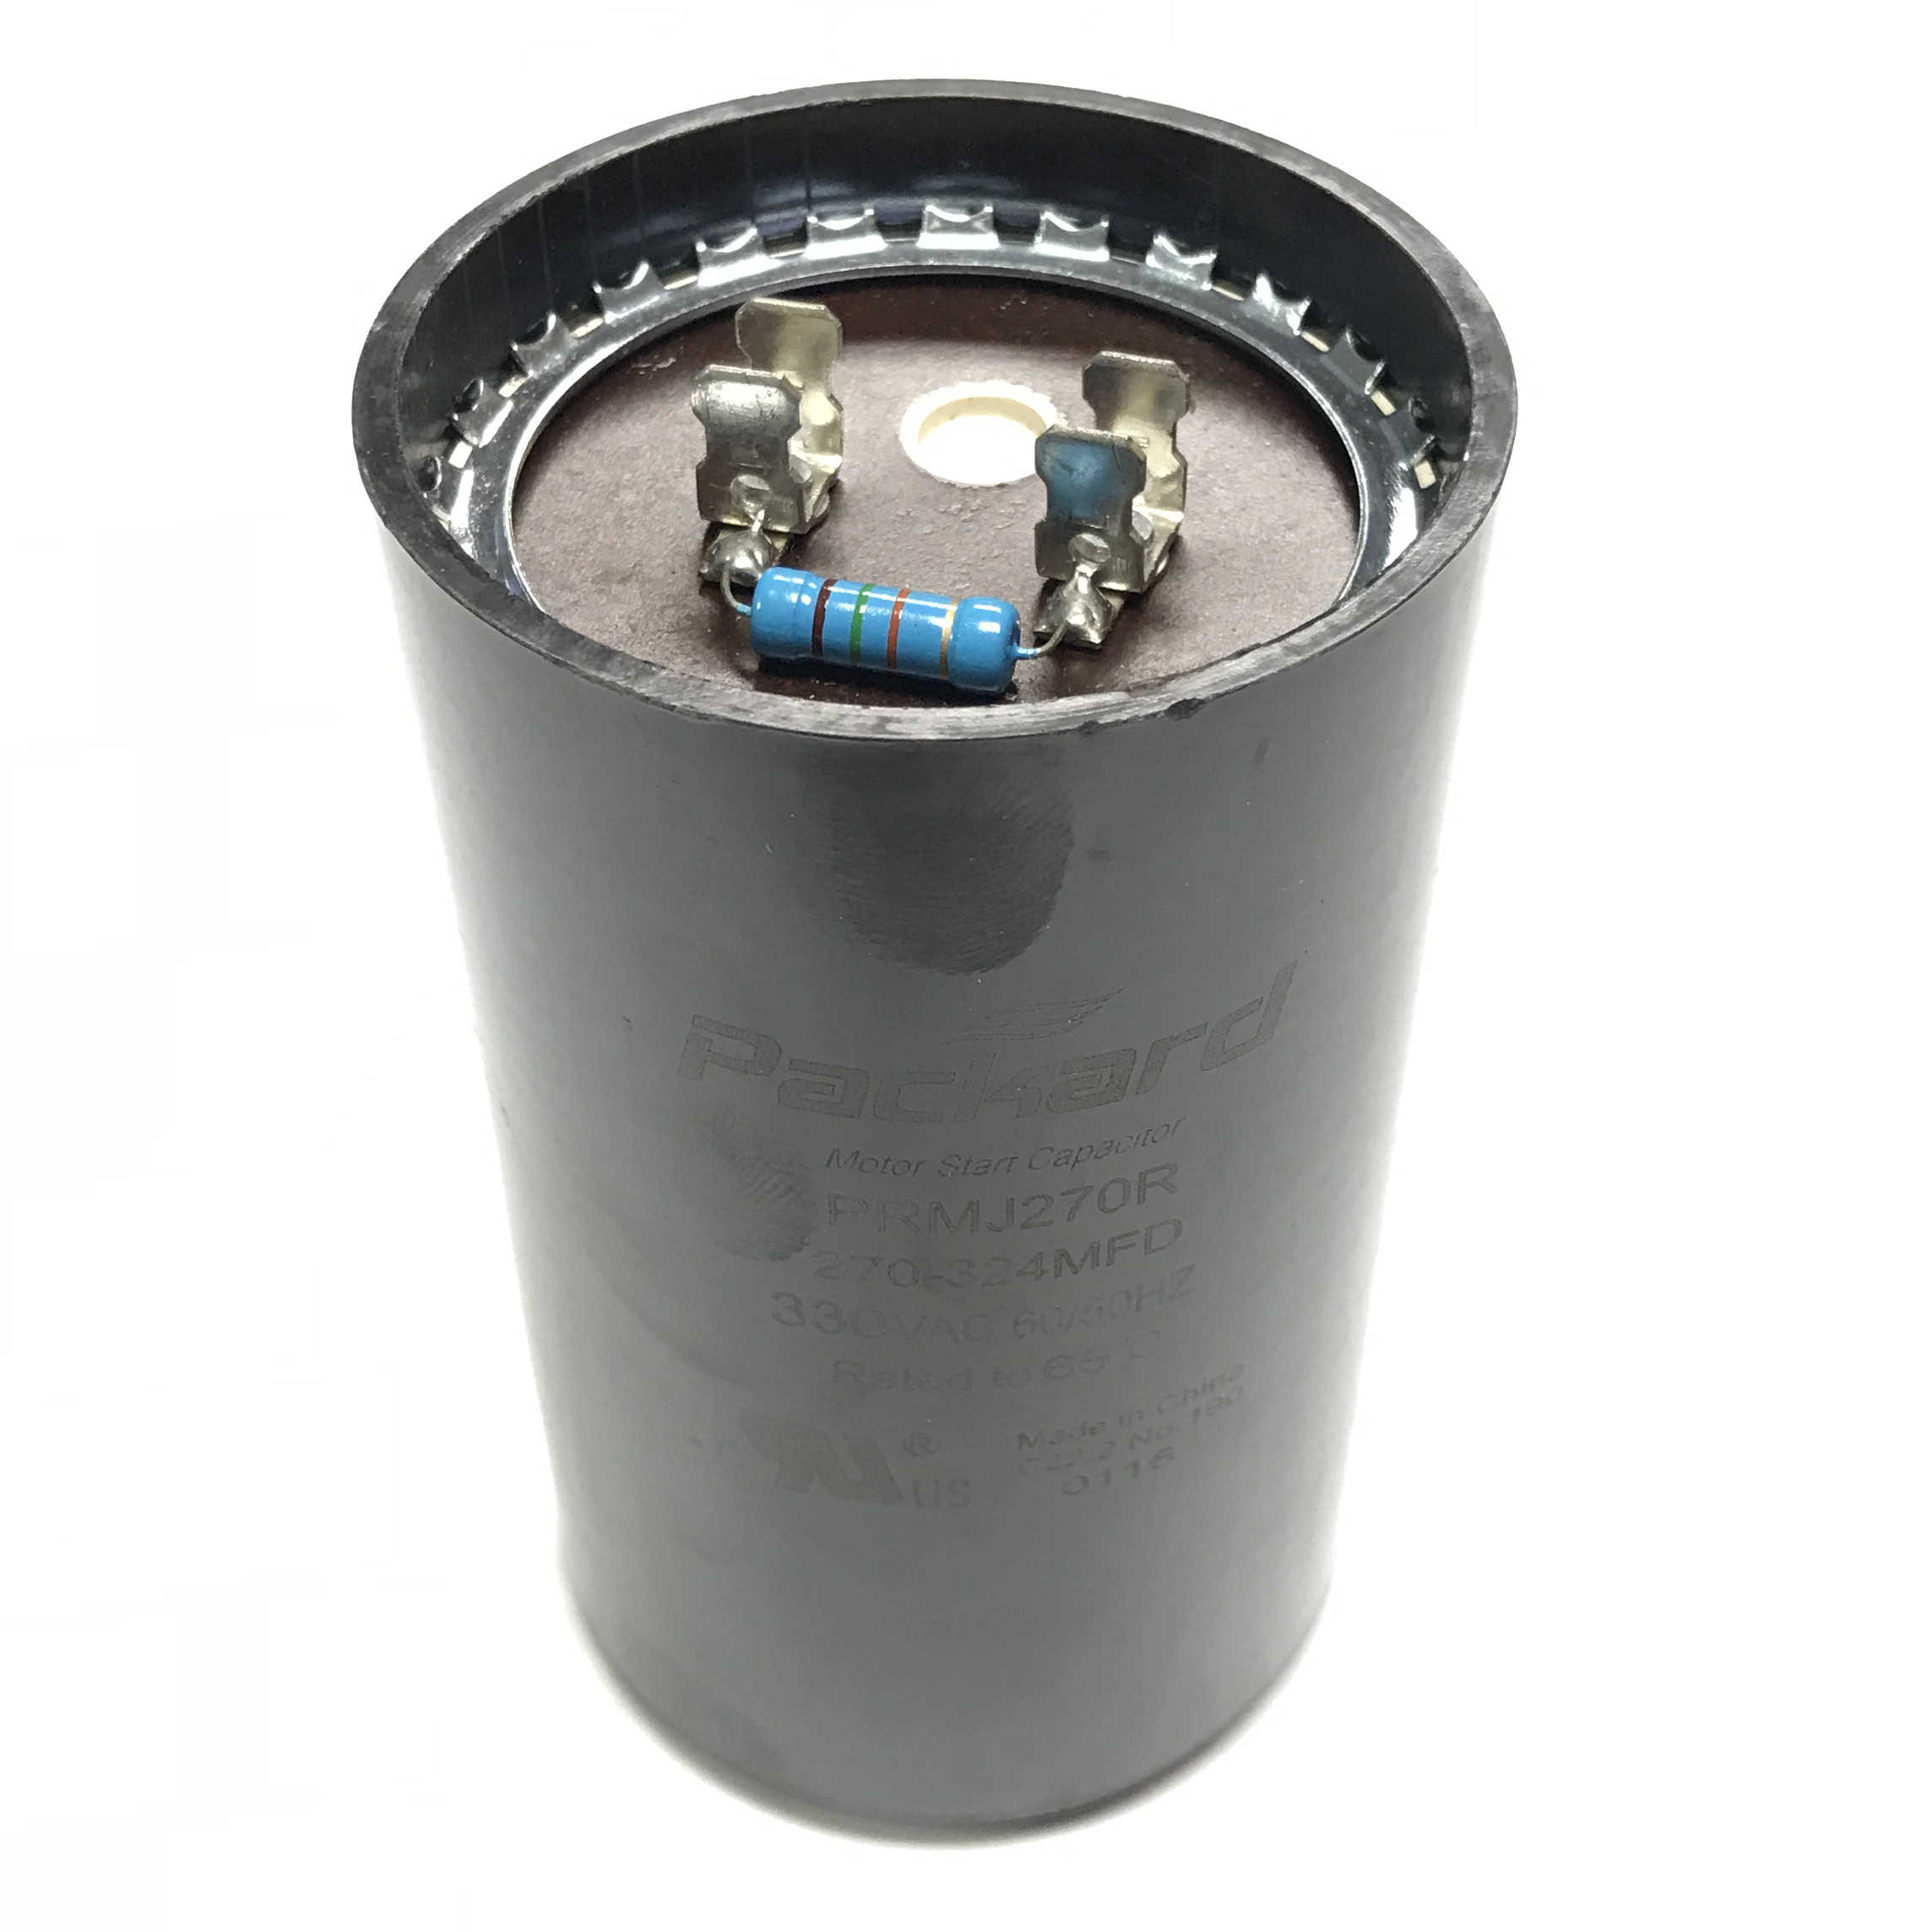 PRMJ270R Packard Start Capacitor, Mfd 270-324 uF